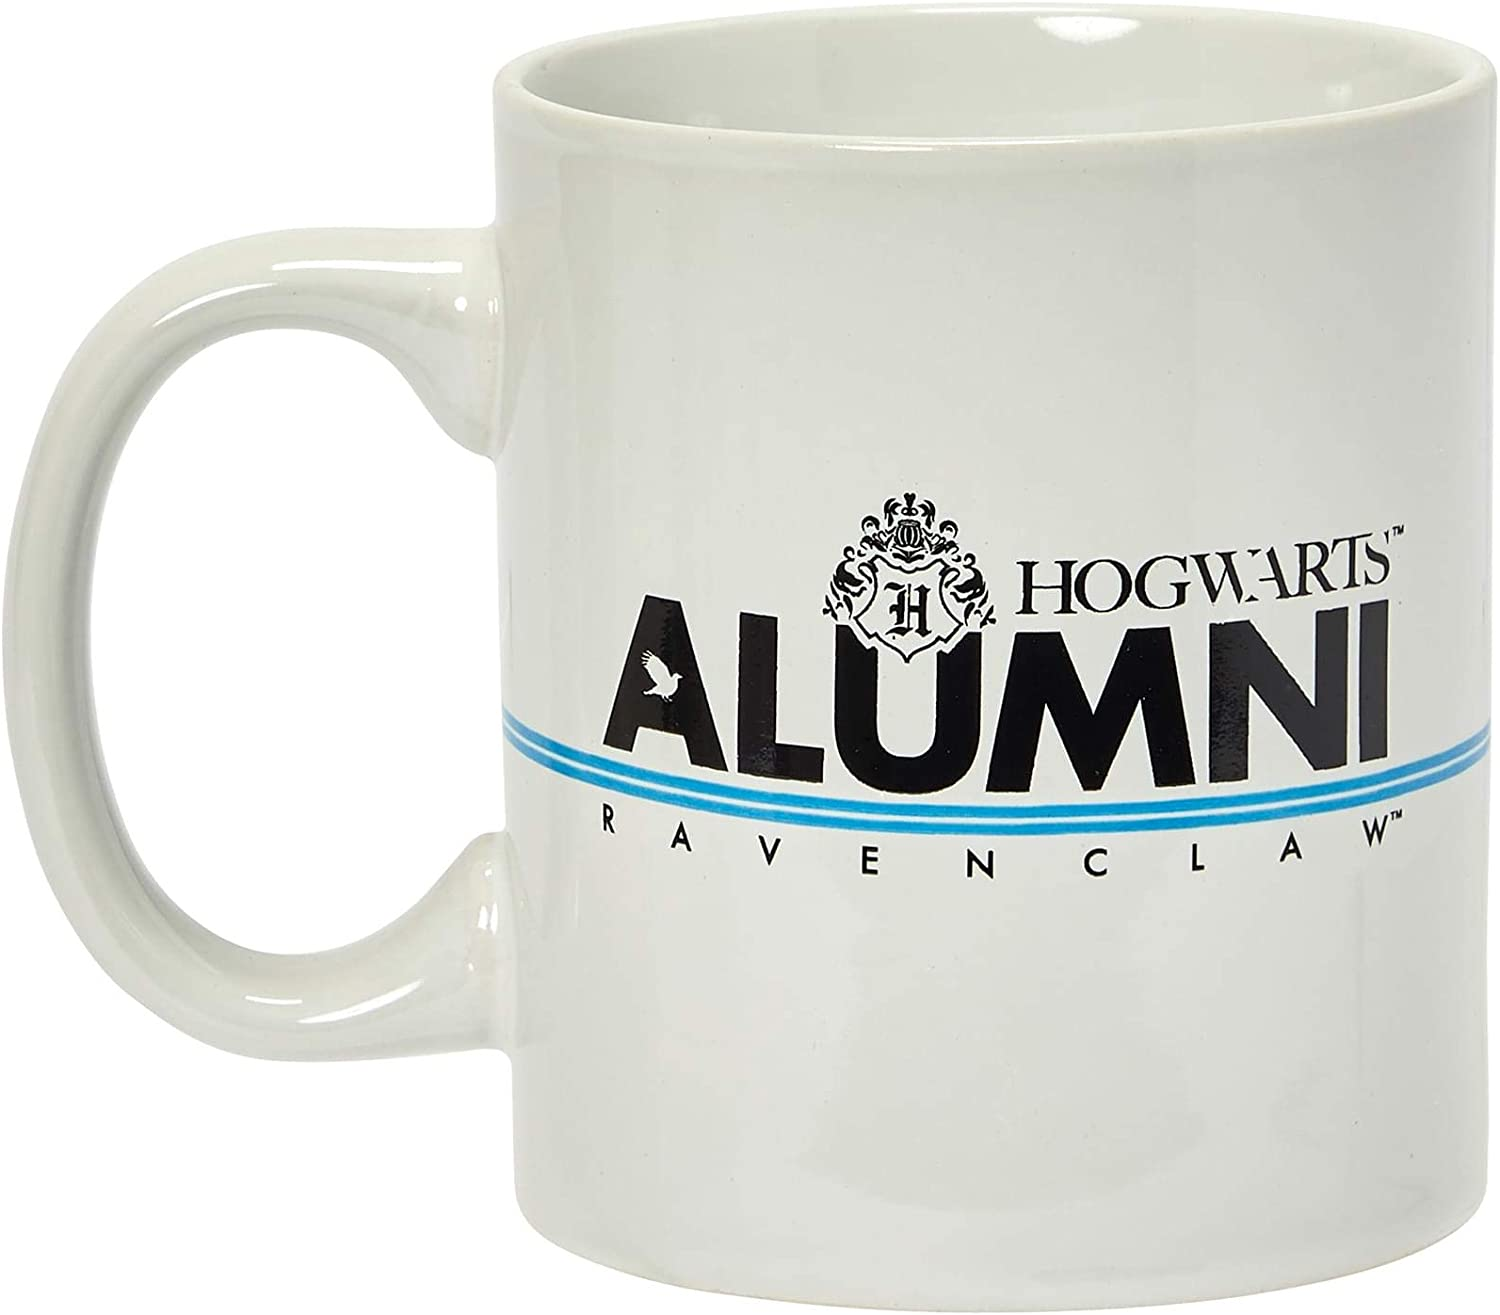 Harry Potter Ravenclaw Alumni 11-Oz Mug - White Ceramic Cup With Handle - Hogwarts Crest & House Blue Stripe With Black Lettering - From Rowling's Wizarding World